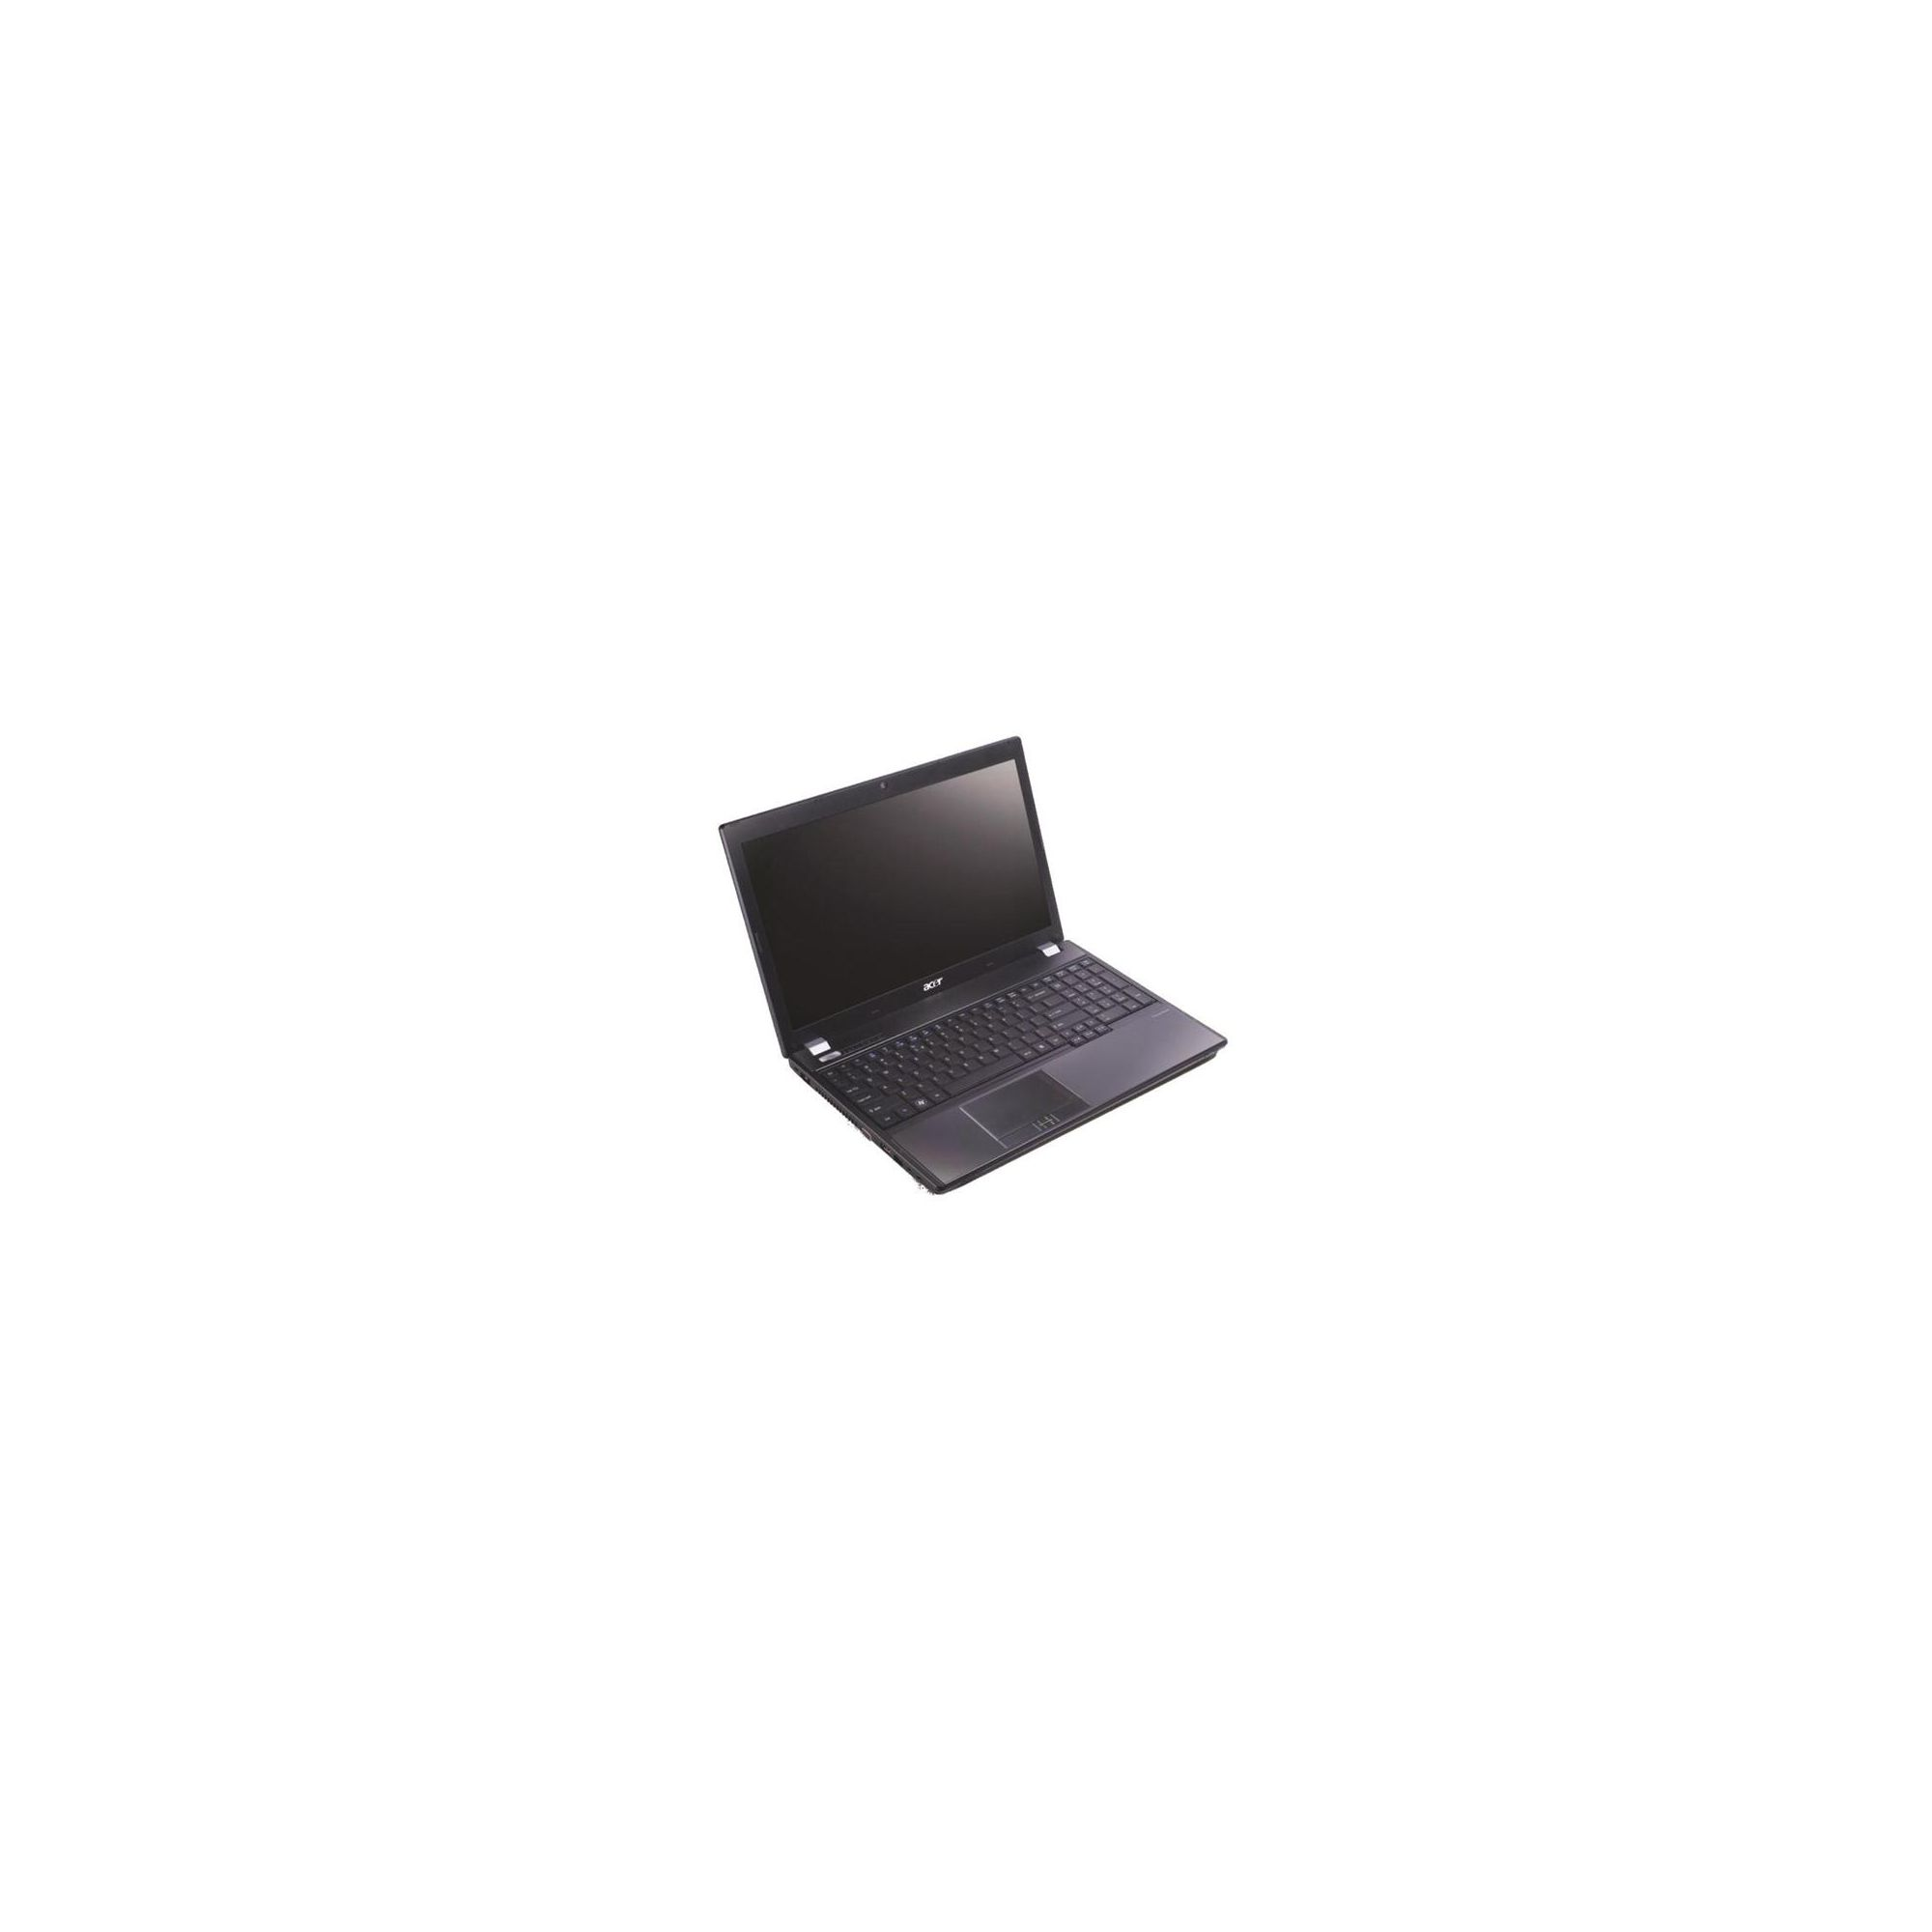 Acer TravelMate TM5760-32324G50Mnsk (15.6 inch) Notebook Core i3 (2328M) 2.2GHz 4GB 500GB DVD-SM DL WLAN Webcam Windows 7 Pro 64-bit/32-bit Dual Load at Tesco Direct